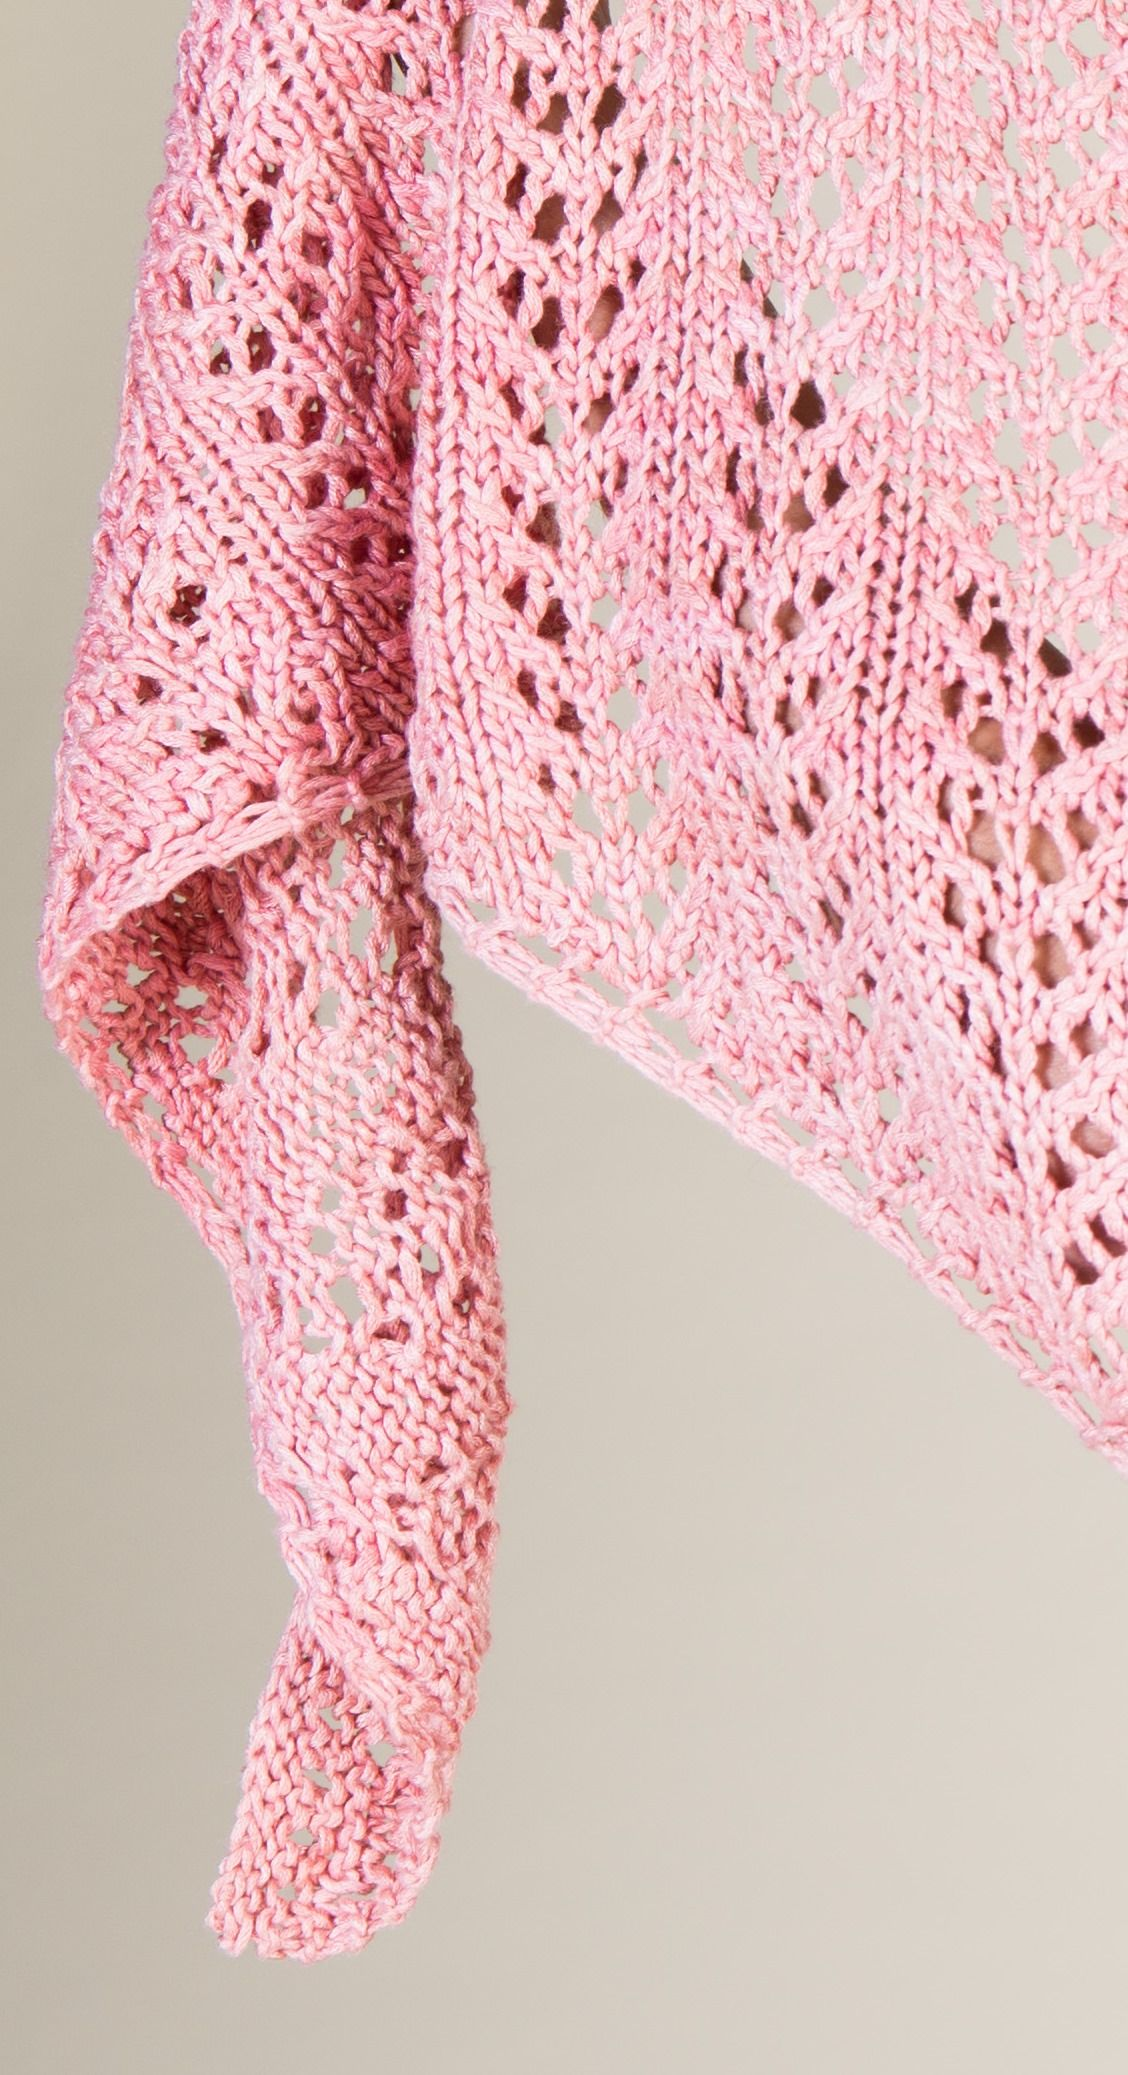 An Easy Lace Knitting Pattern: The Sausalito Shawl | Lace knitting ...